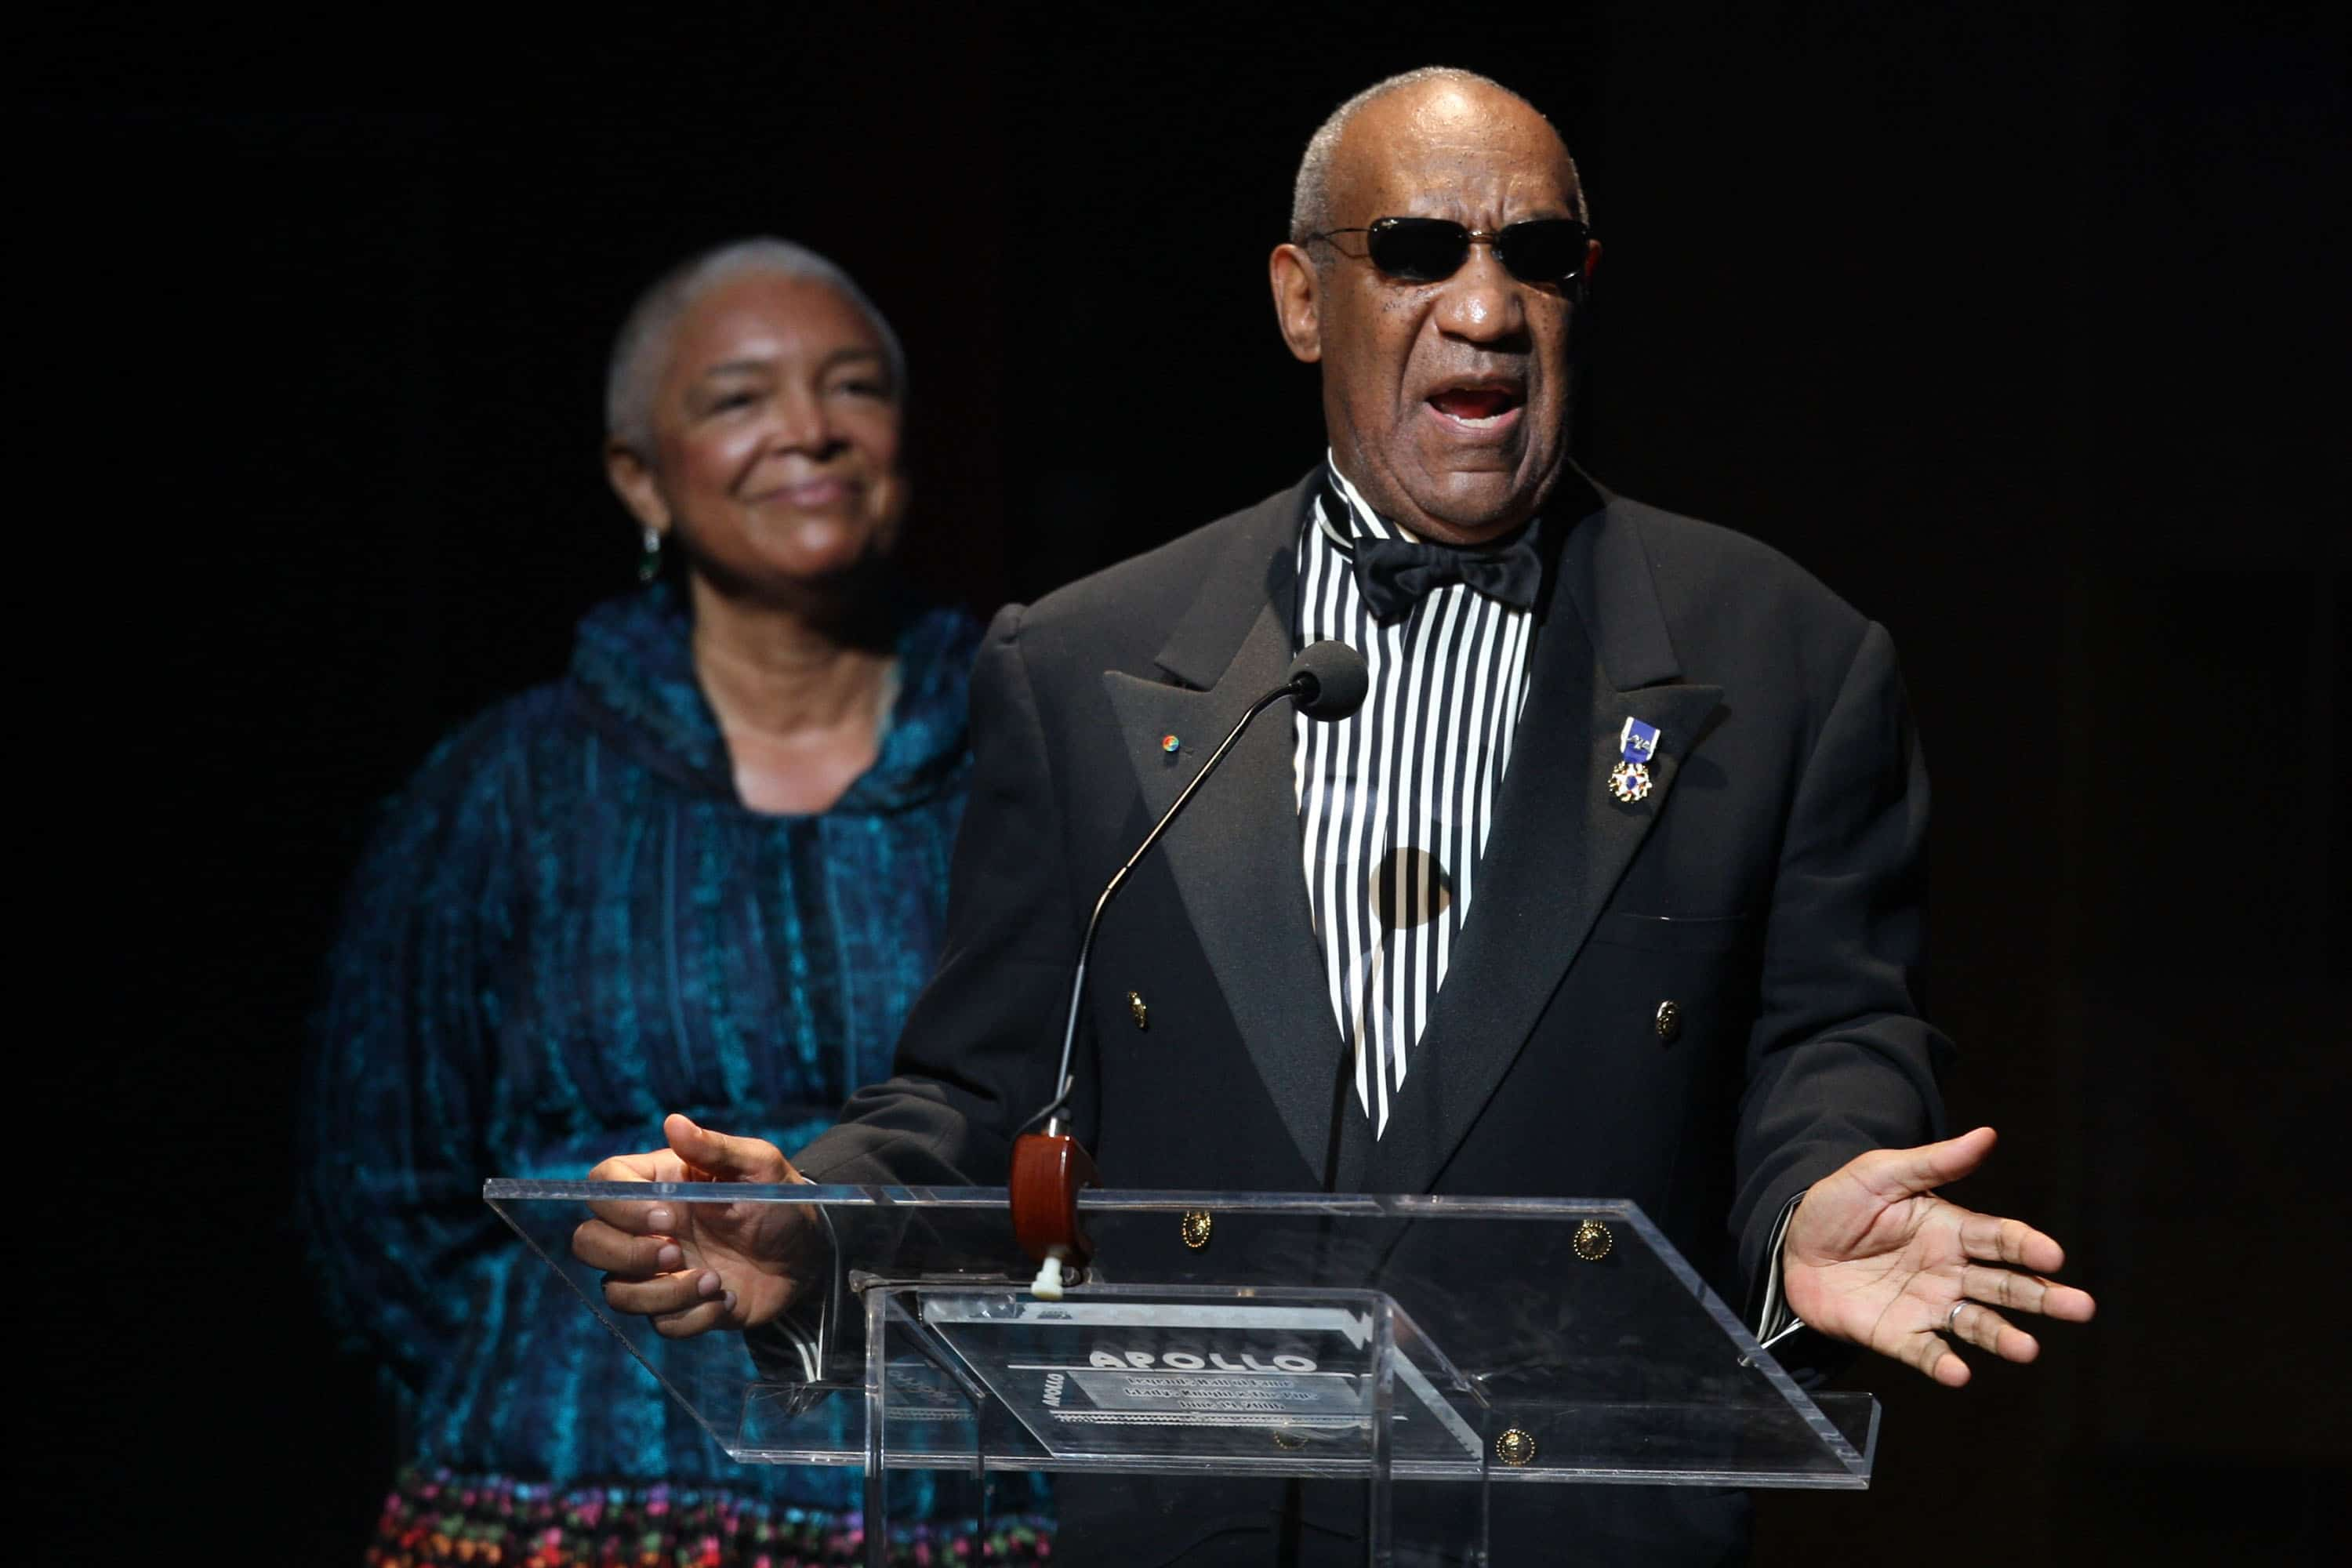 Bill Cosby and Camille Cosby in 2009.